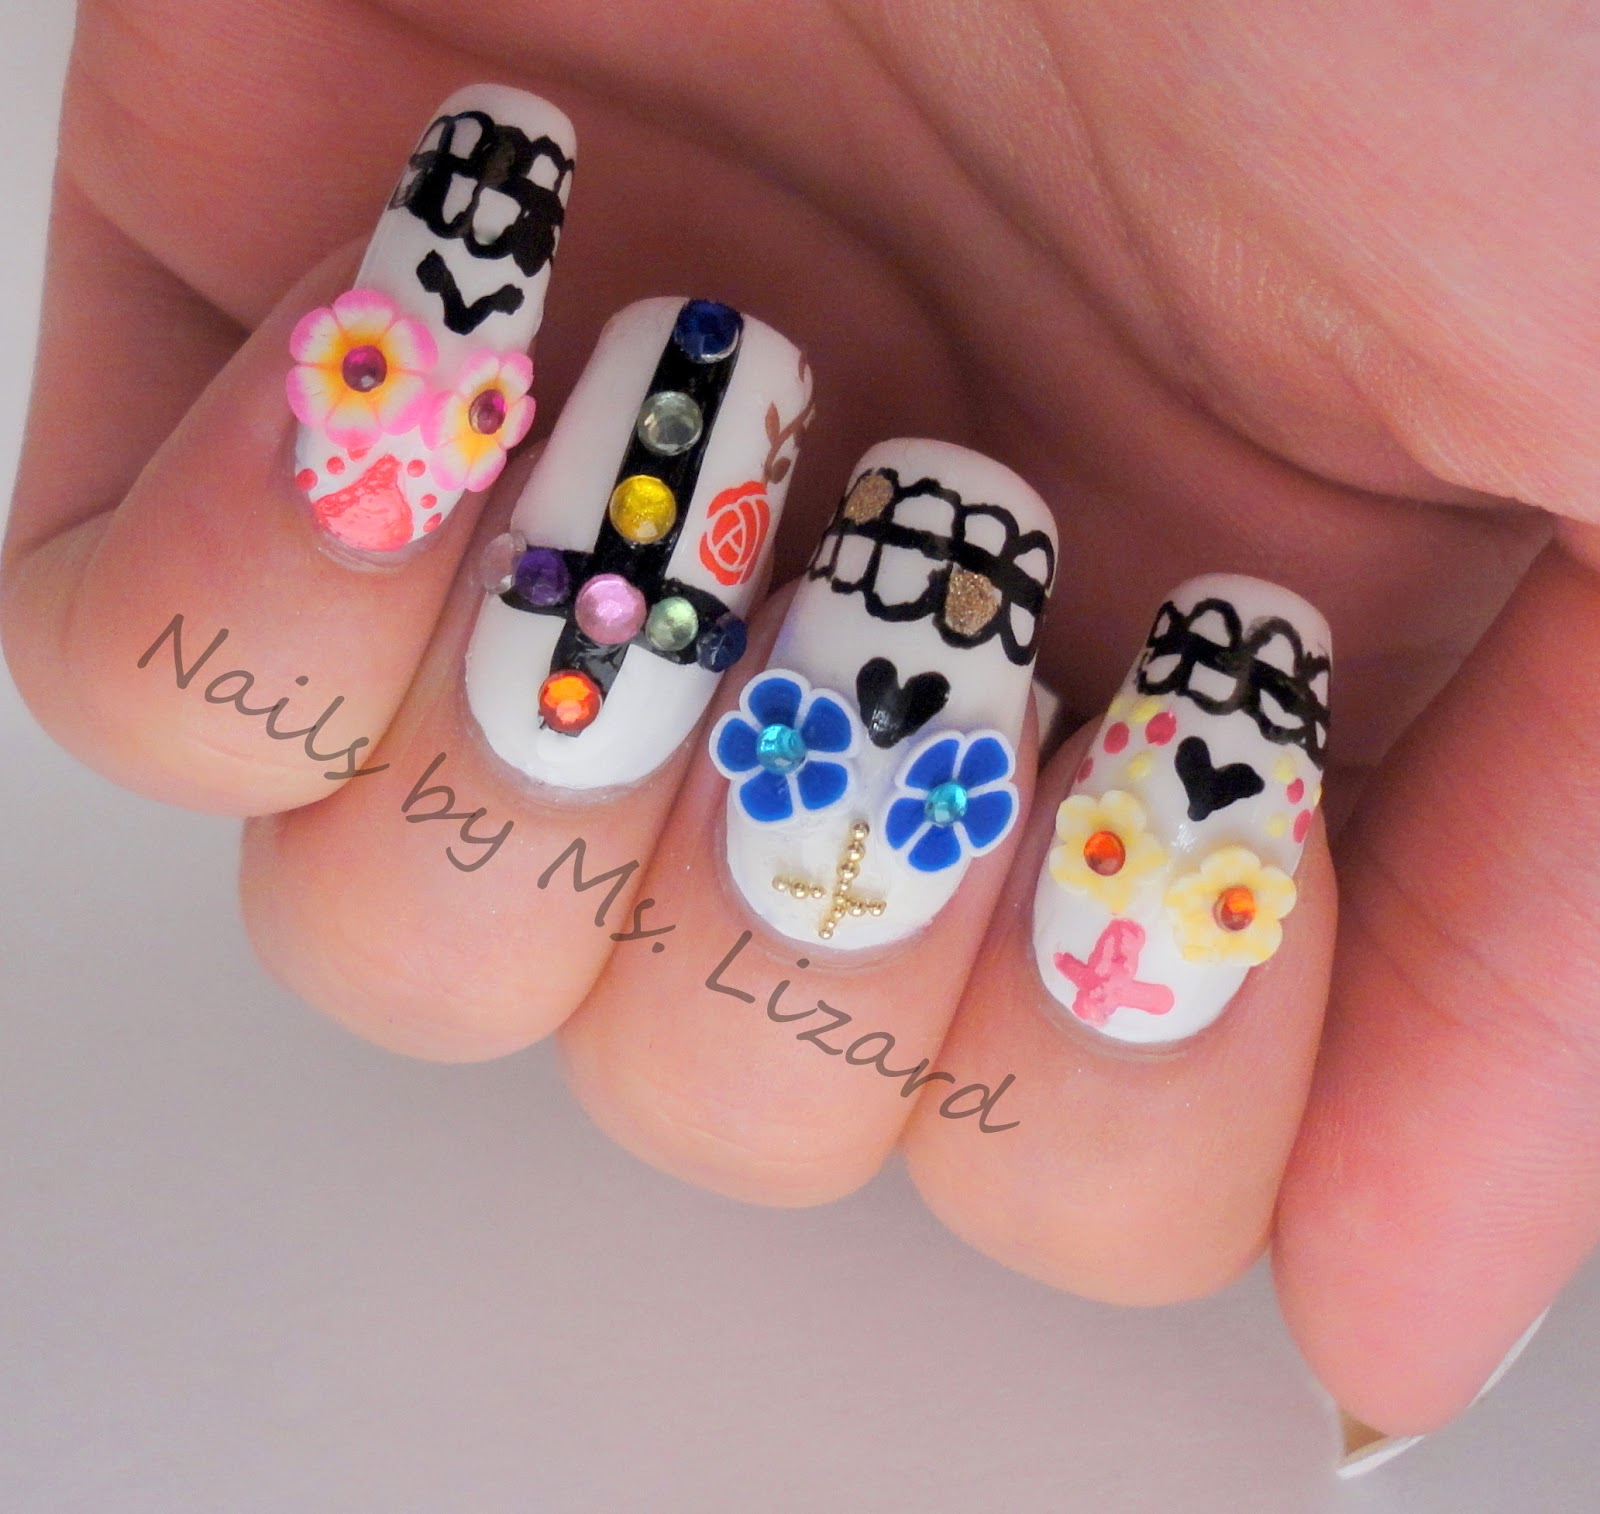 Nails by Ms. Lizard: Halloween Nail Art: recap